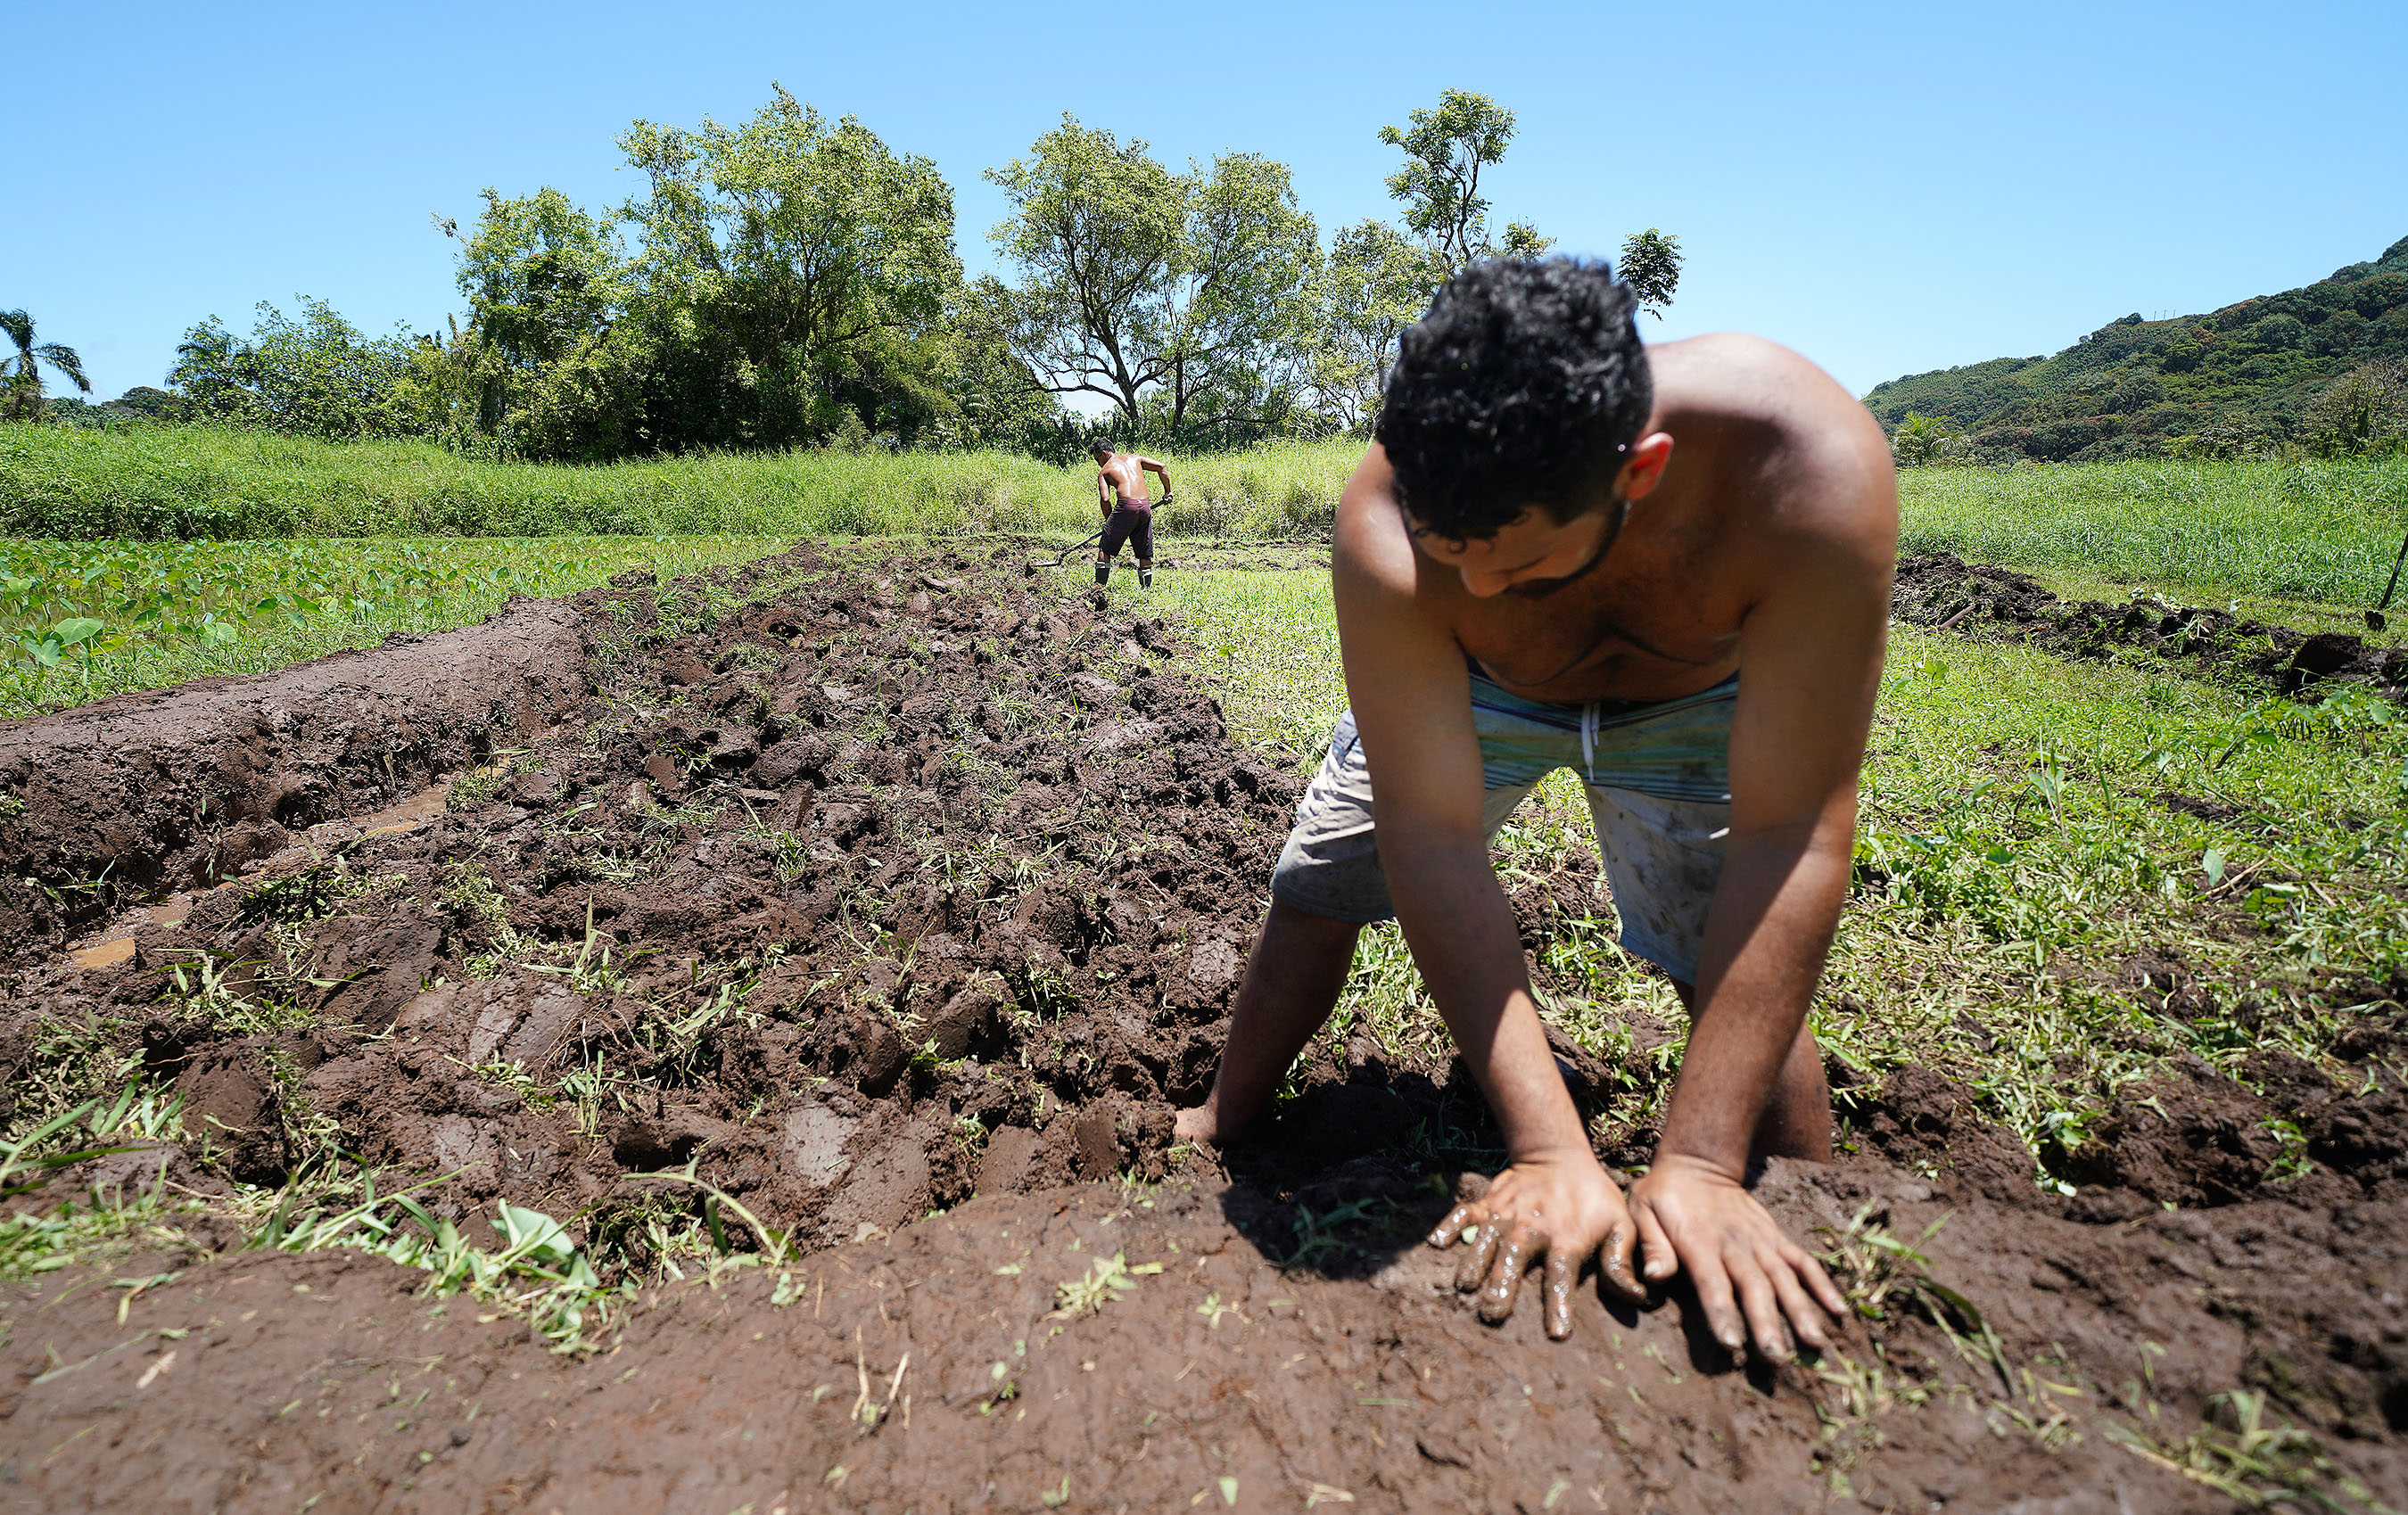 <p><strong>Water Rights:</strong> Young adults dig and rebuild a taro patch, or lo'i, at Ed Wendt's farm in Wailua. A court case enabled him to regain access to water from a stream that Alexander & Baldwin, one of the state's largest land owners, had been diverting in East Maui to grow sugarcane.</p>